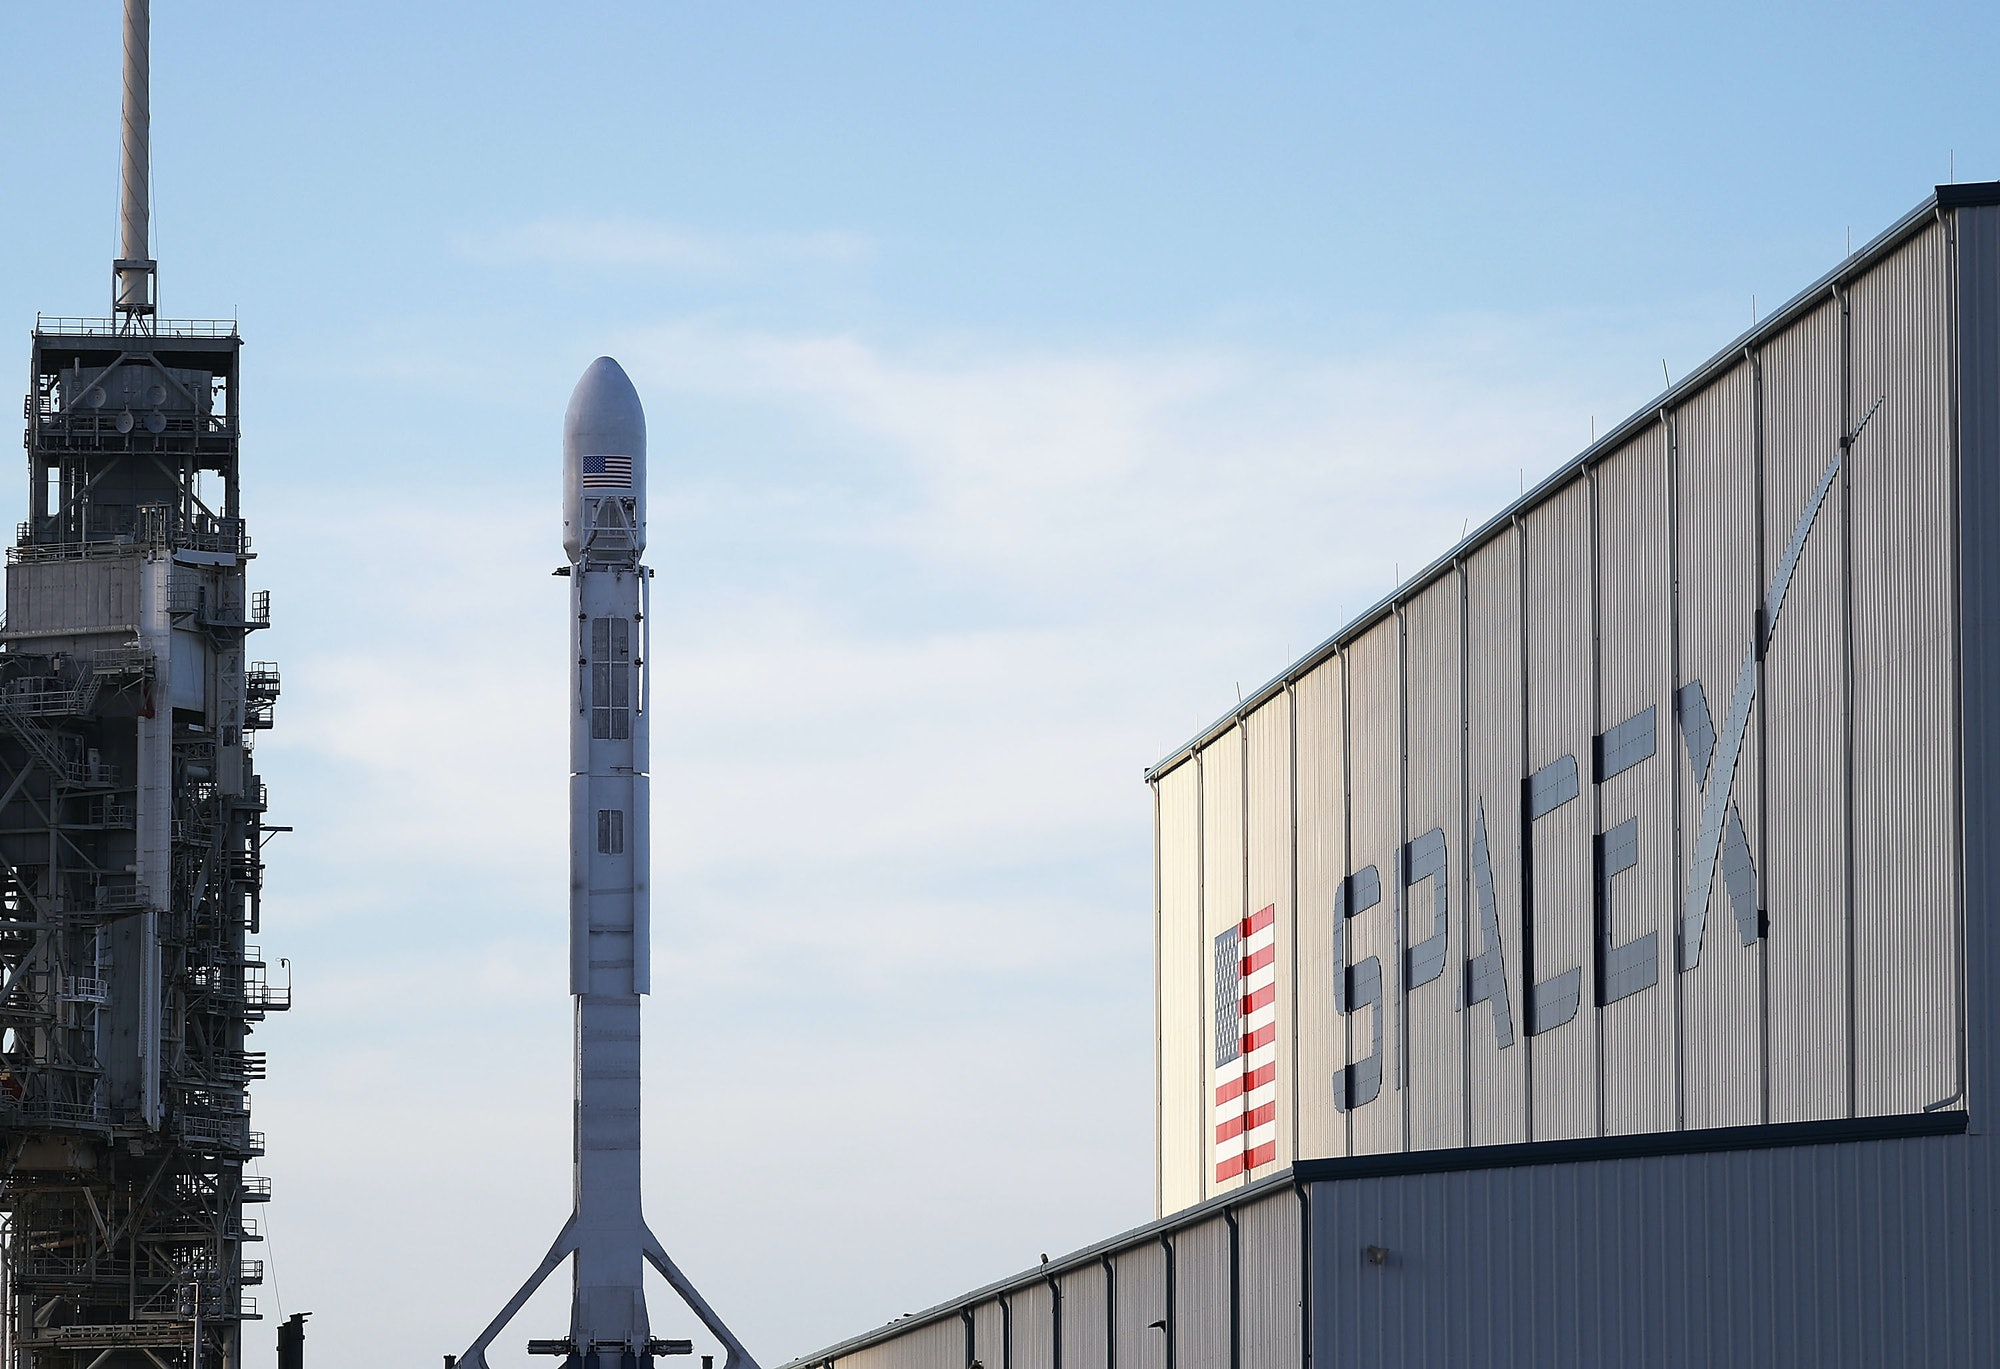 CAPE CANAVERAL, FL - APRIL 29: A SpaceX rocket sits on launch pad 39A as it is prepared for the NROL-76 launch on April 29,2017in Cape Canaveral, Florida. SpaceX will attempt to deliver a classified payload to orbit and liftoff is scheduled for tomorrow at 7 a.m. ET from Kennedy Space Center. (Photo by Joe Raedle/Getty Images)